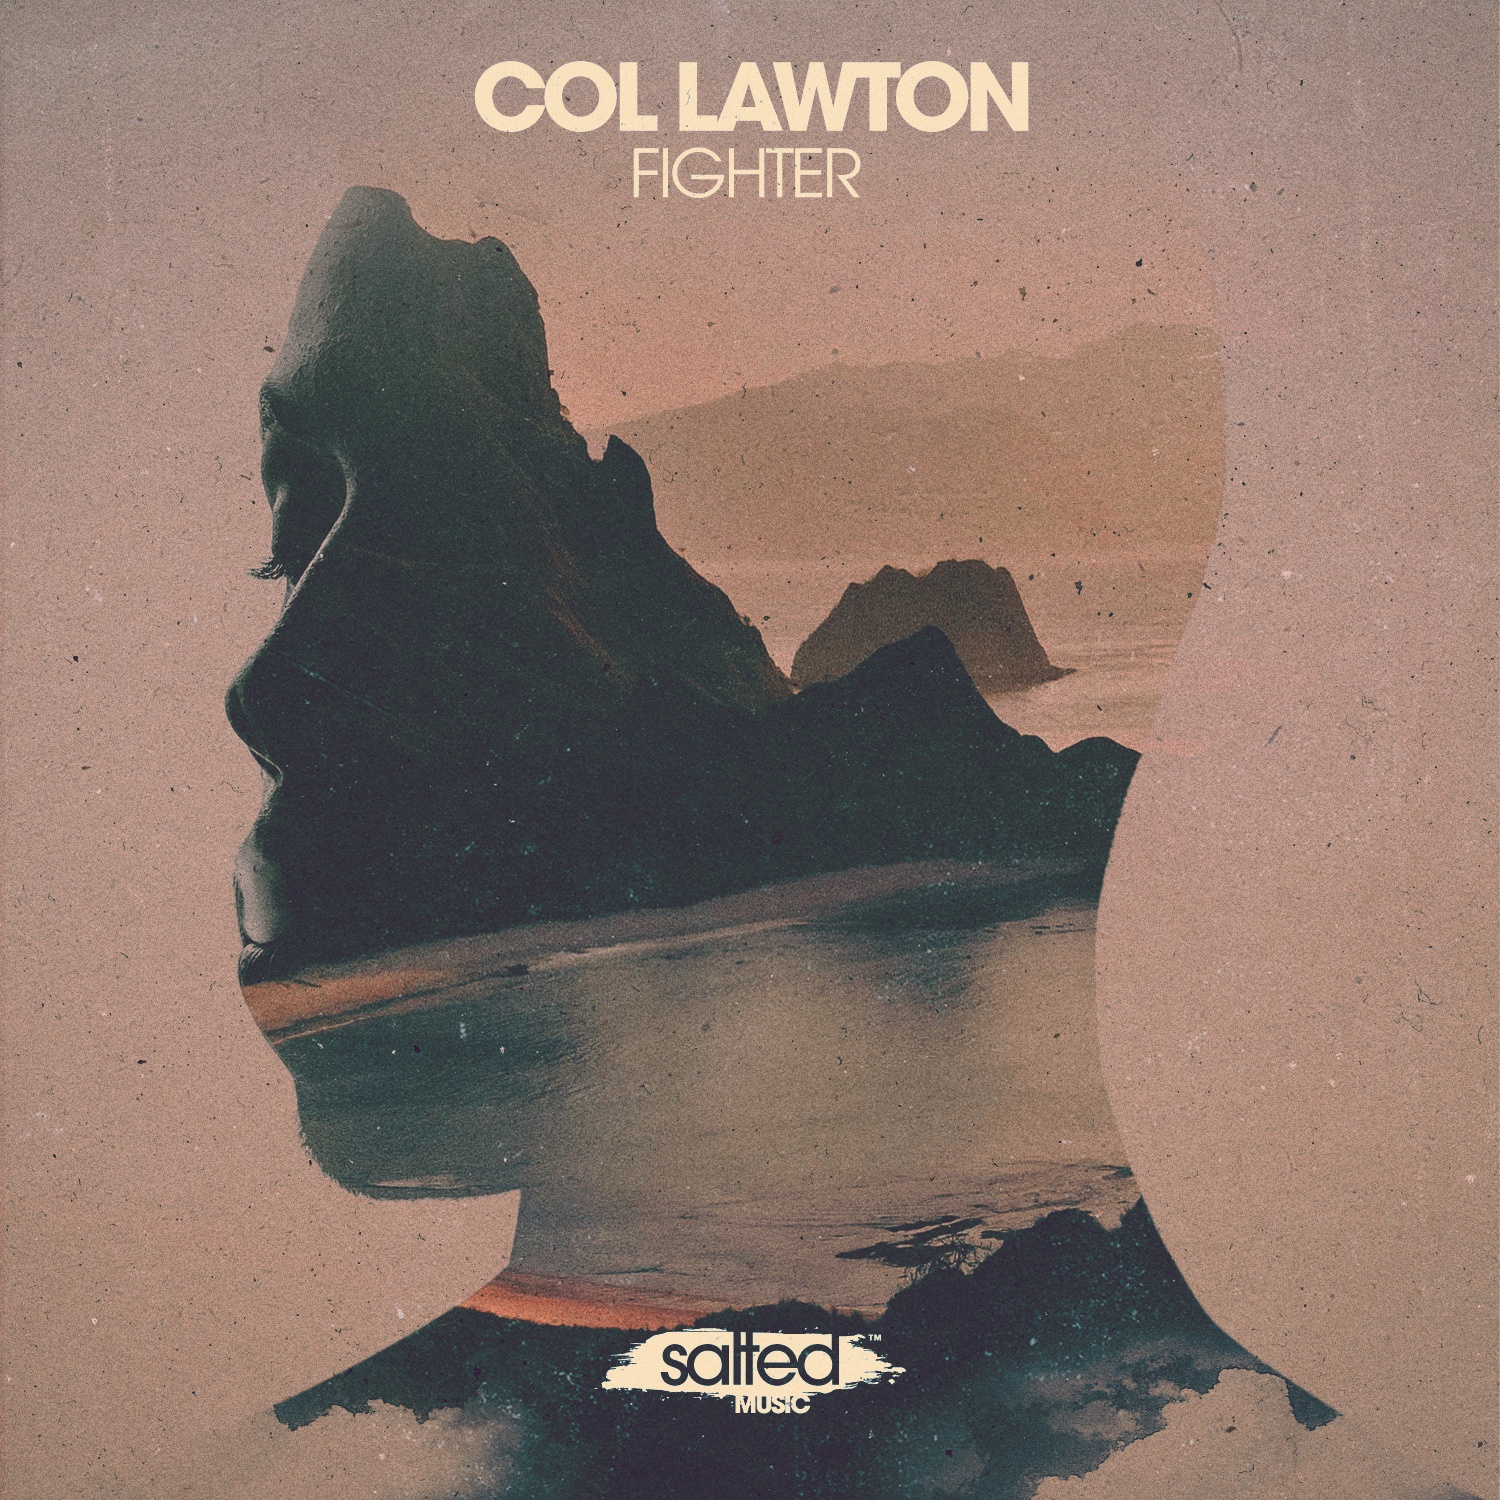 SLT197: Col Lawton - Fighter (Salted Music)